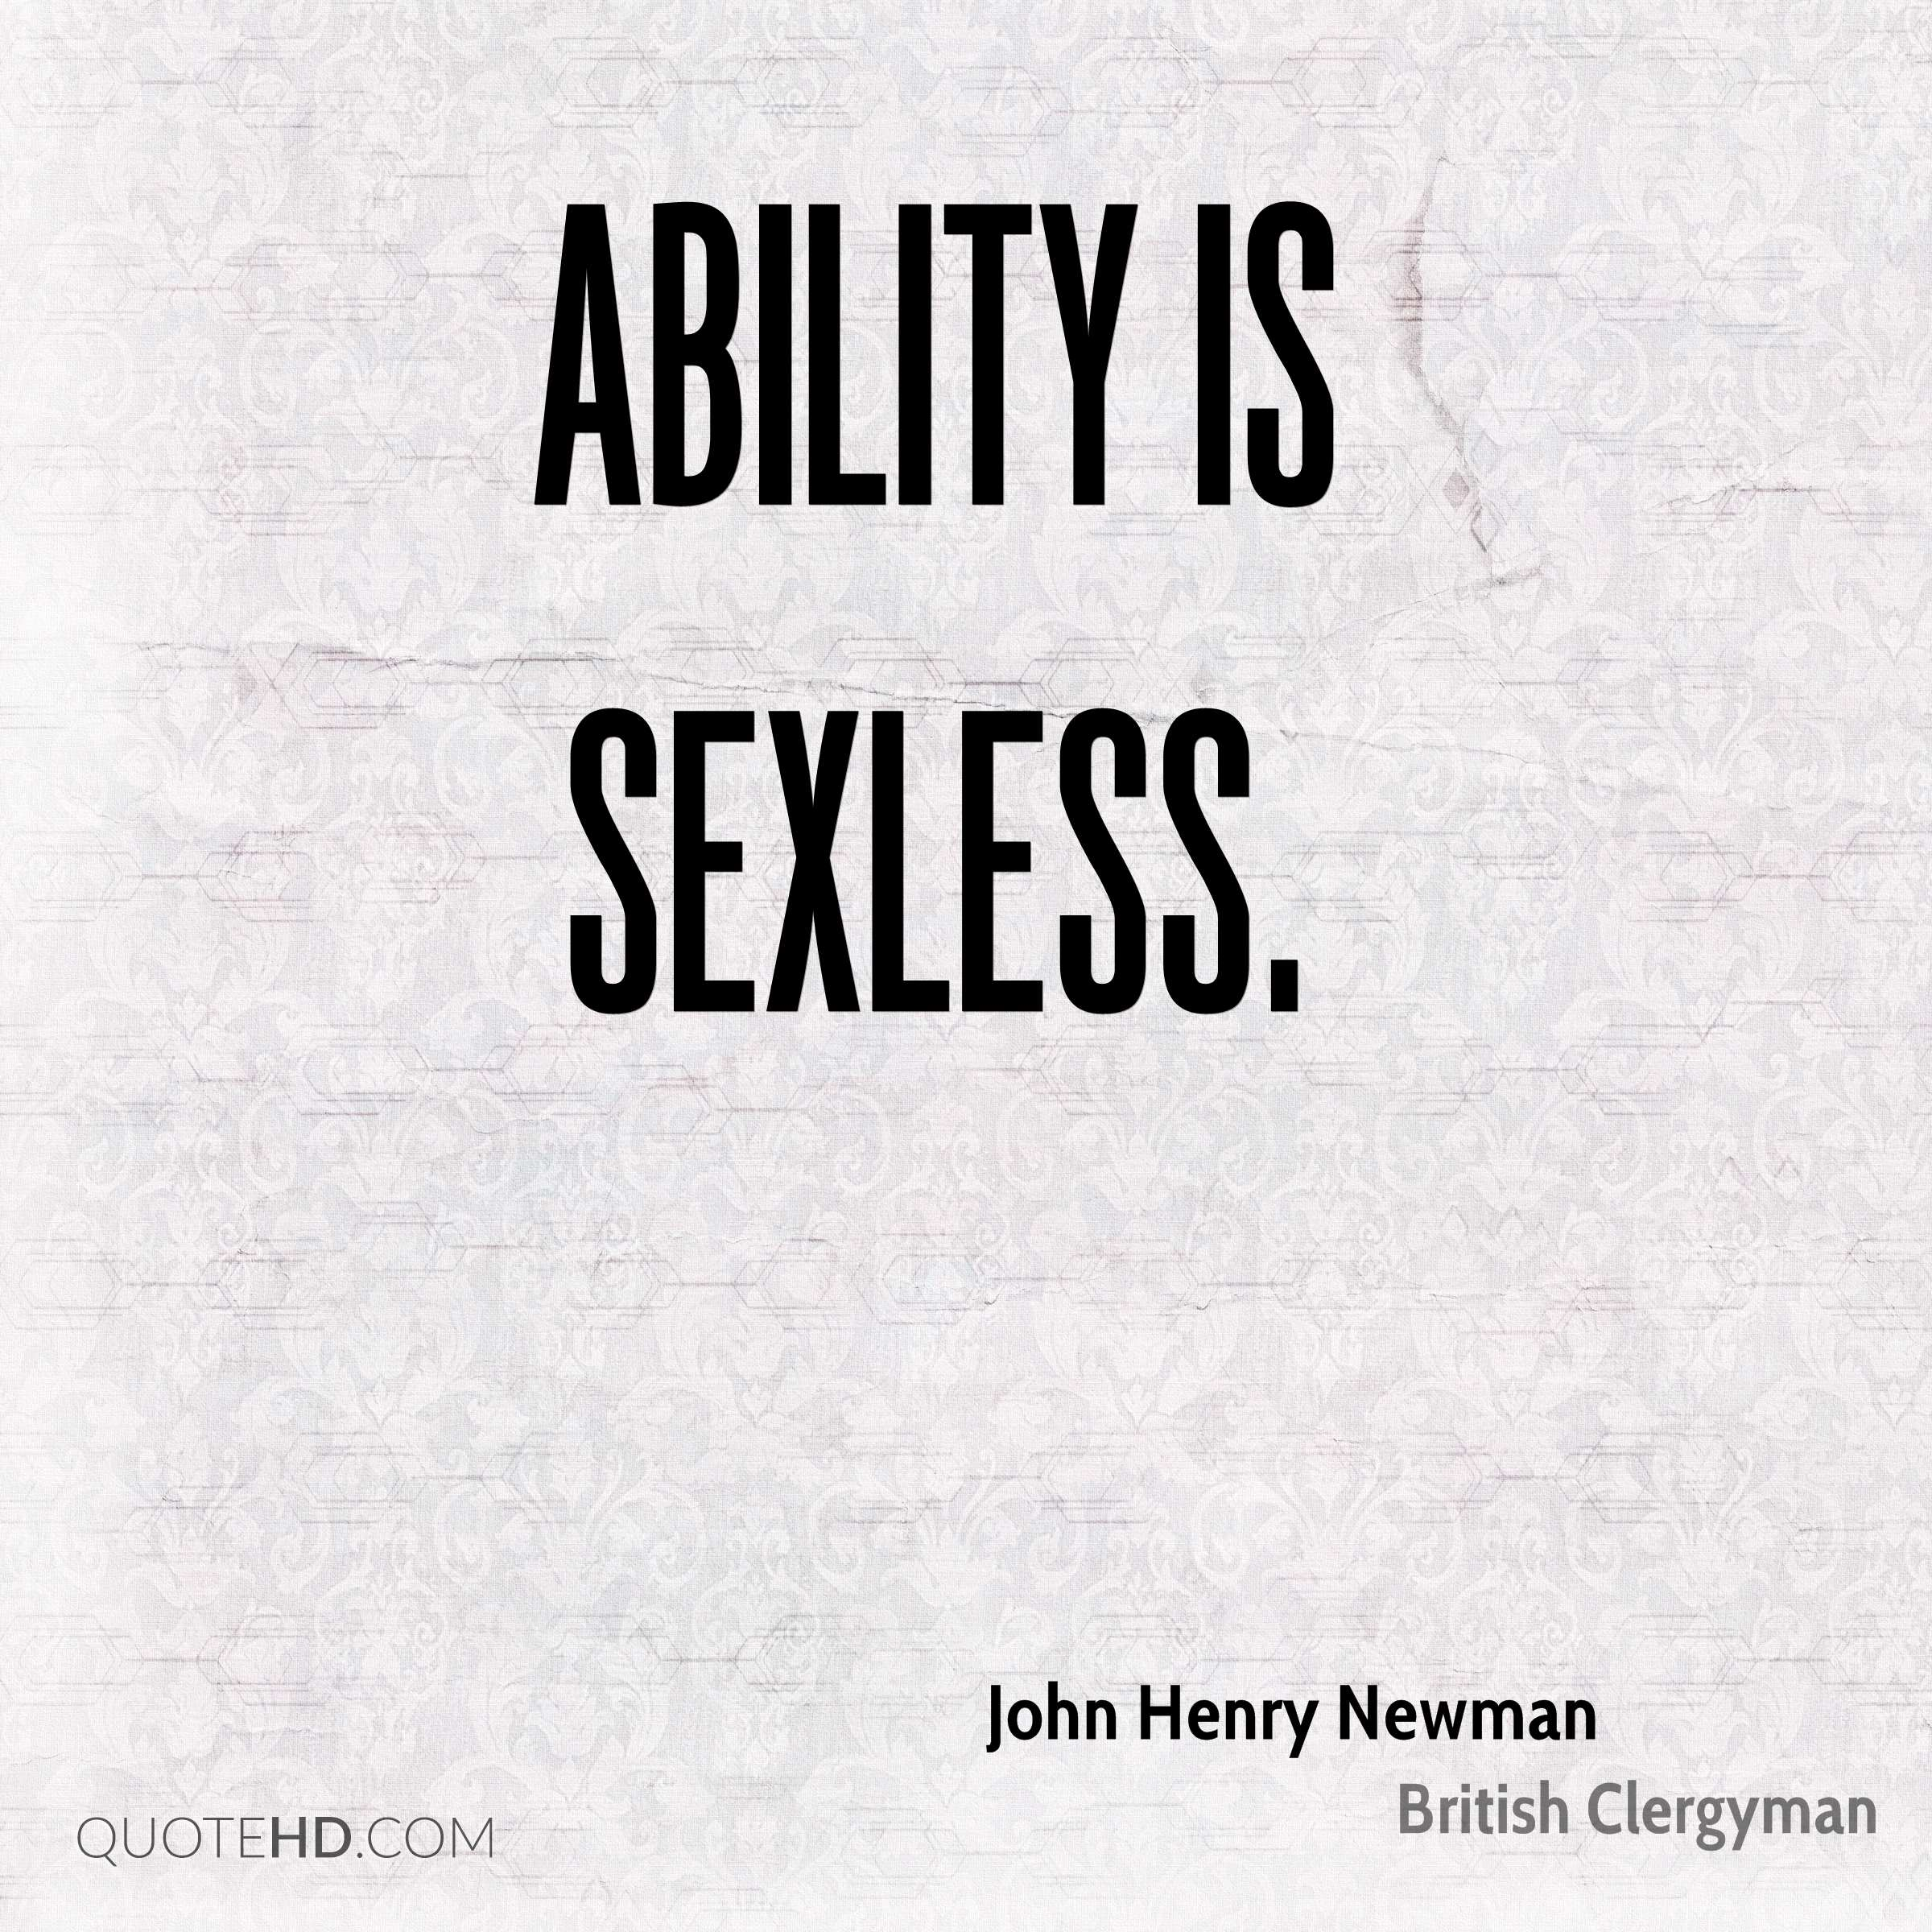 Ability is sexless.